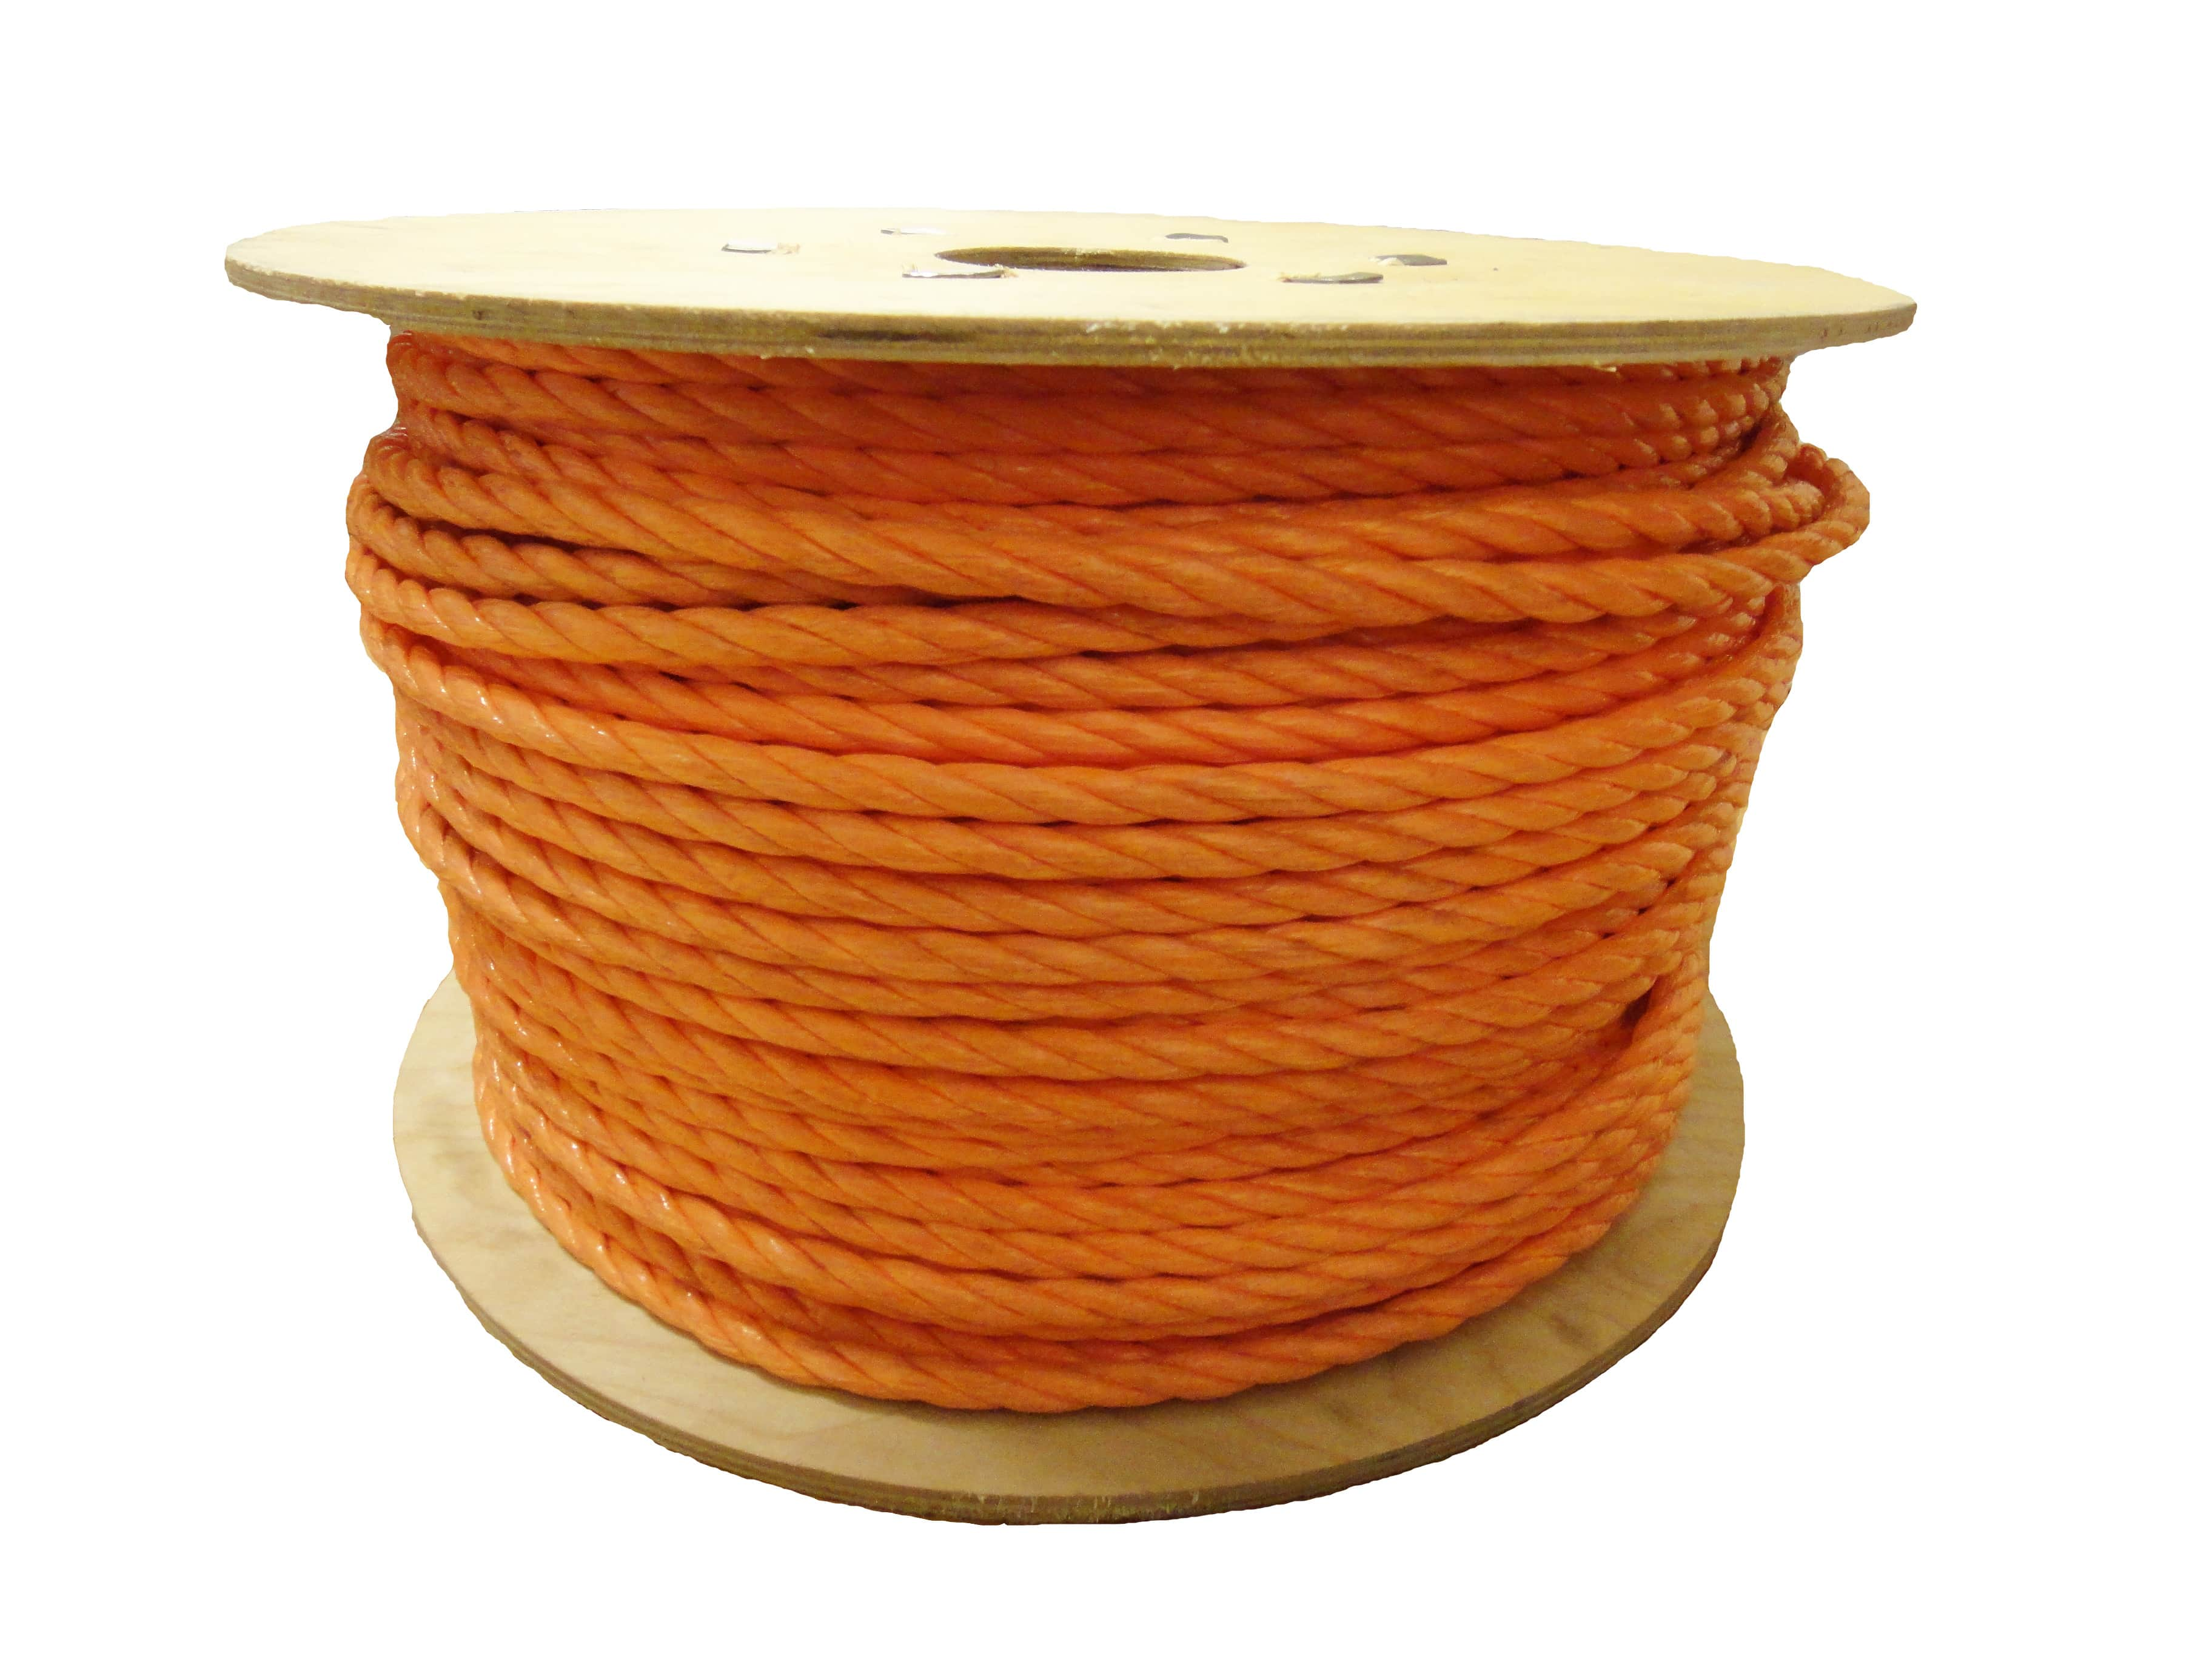 10mm Orange Polypropylene Rope x 200m On Wooden Drum